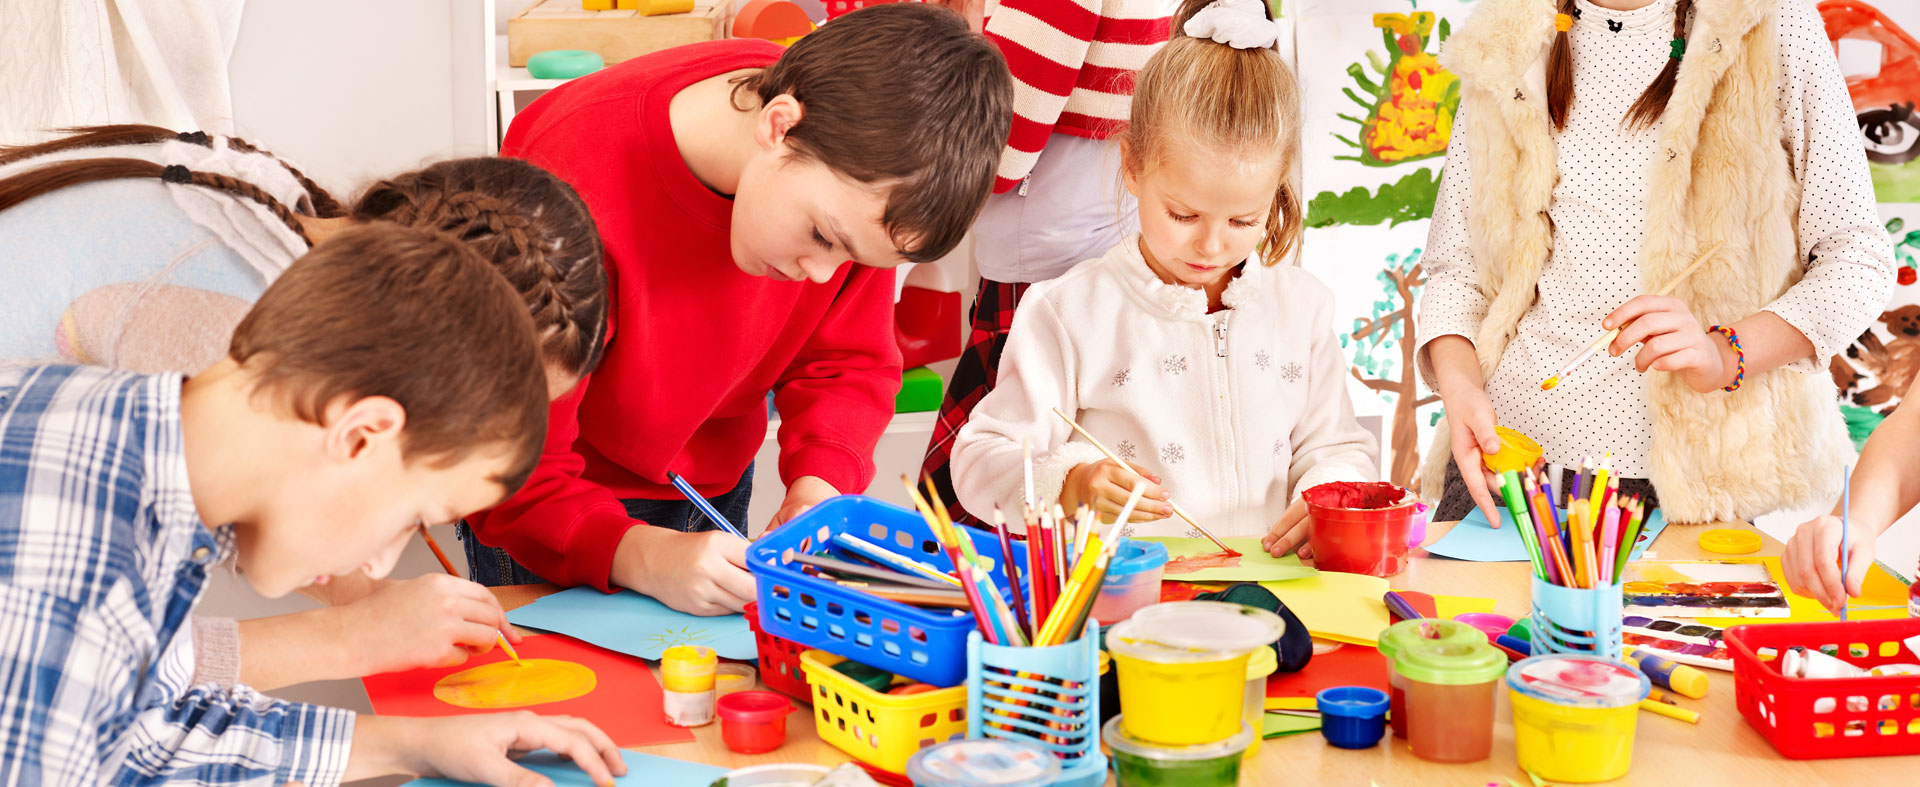 Kids art academy glasgow children 39 s arts and crafts glasgow for Paintings of toddlers